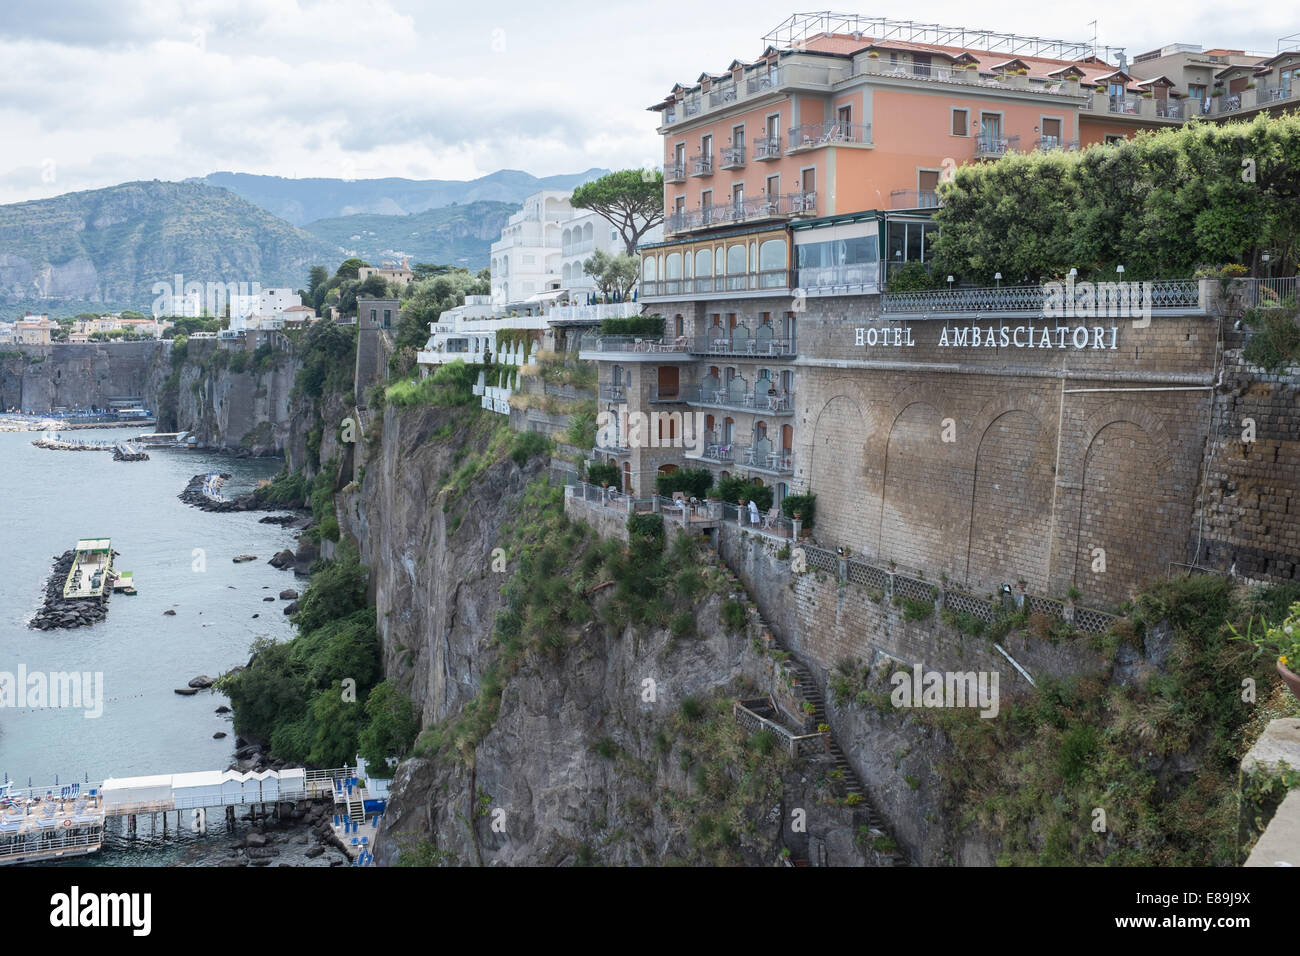 hotels on the cliffs overlooking sea at sorrento stock. Black Bedroom Furniture Sets. Home Design Ideas